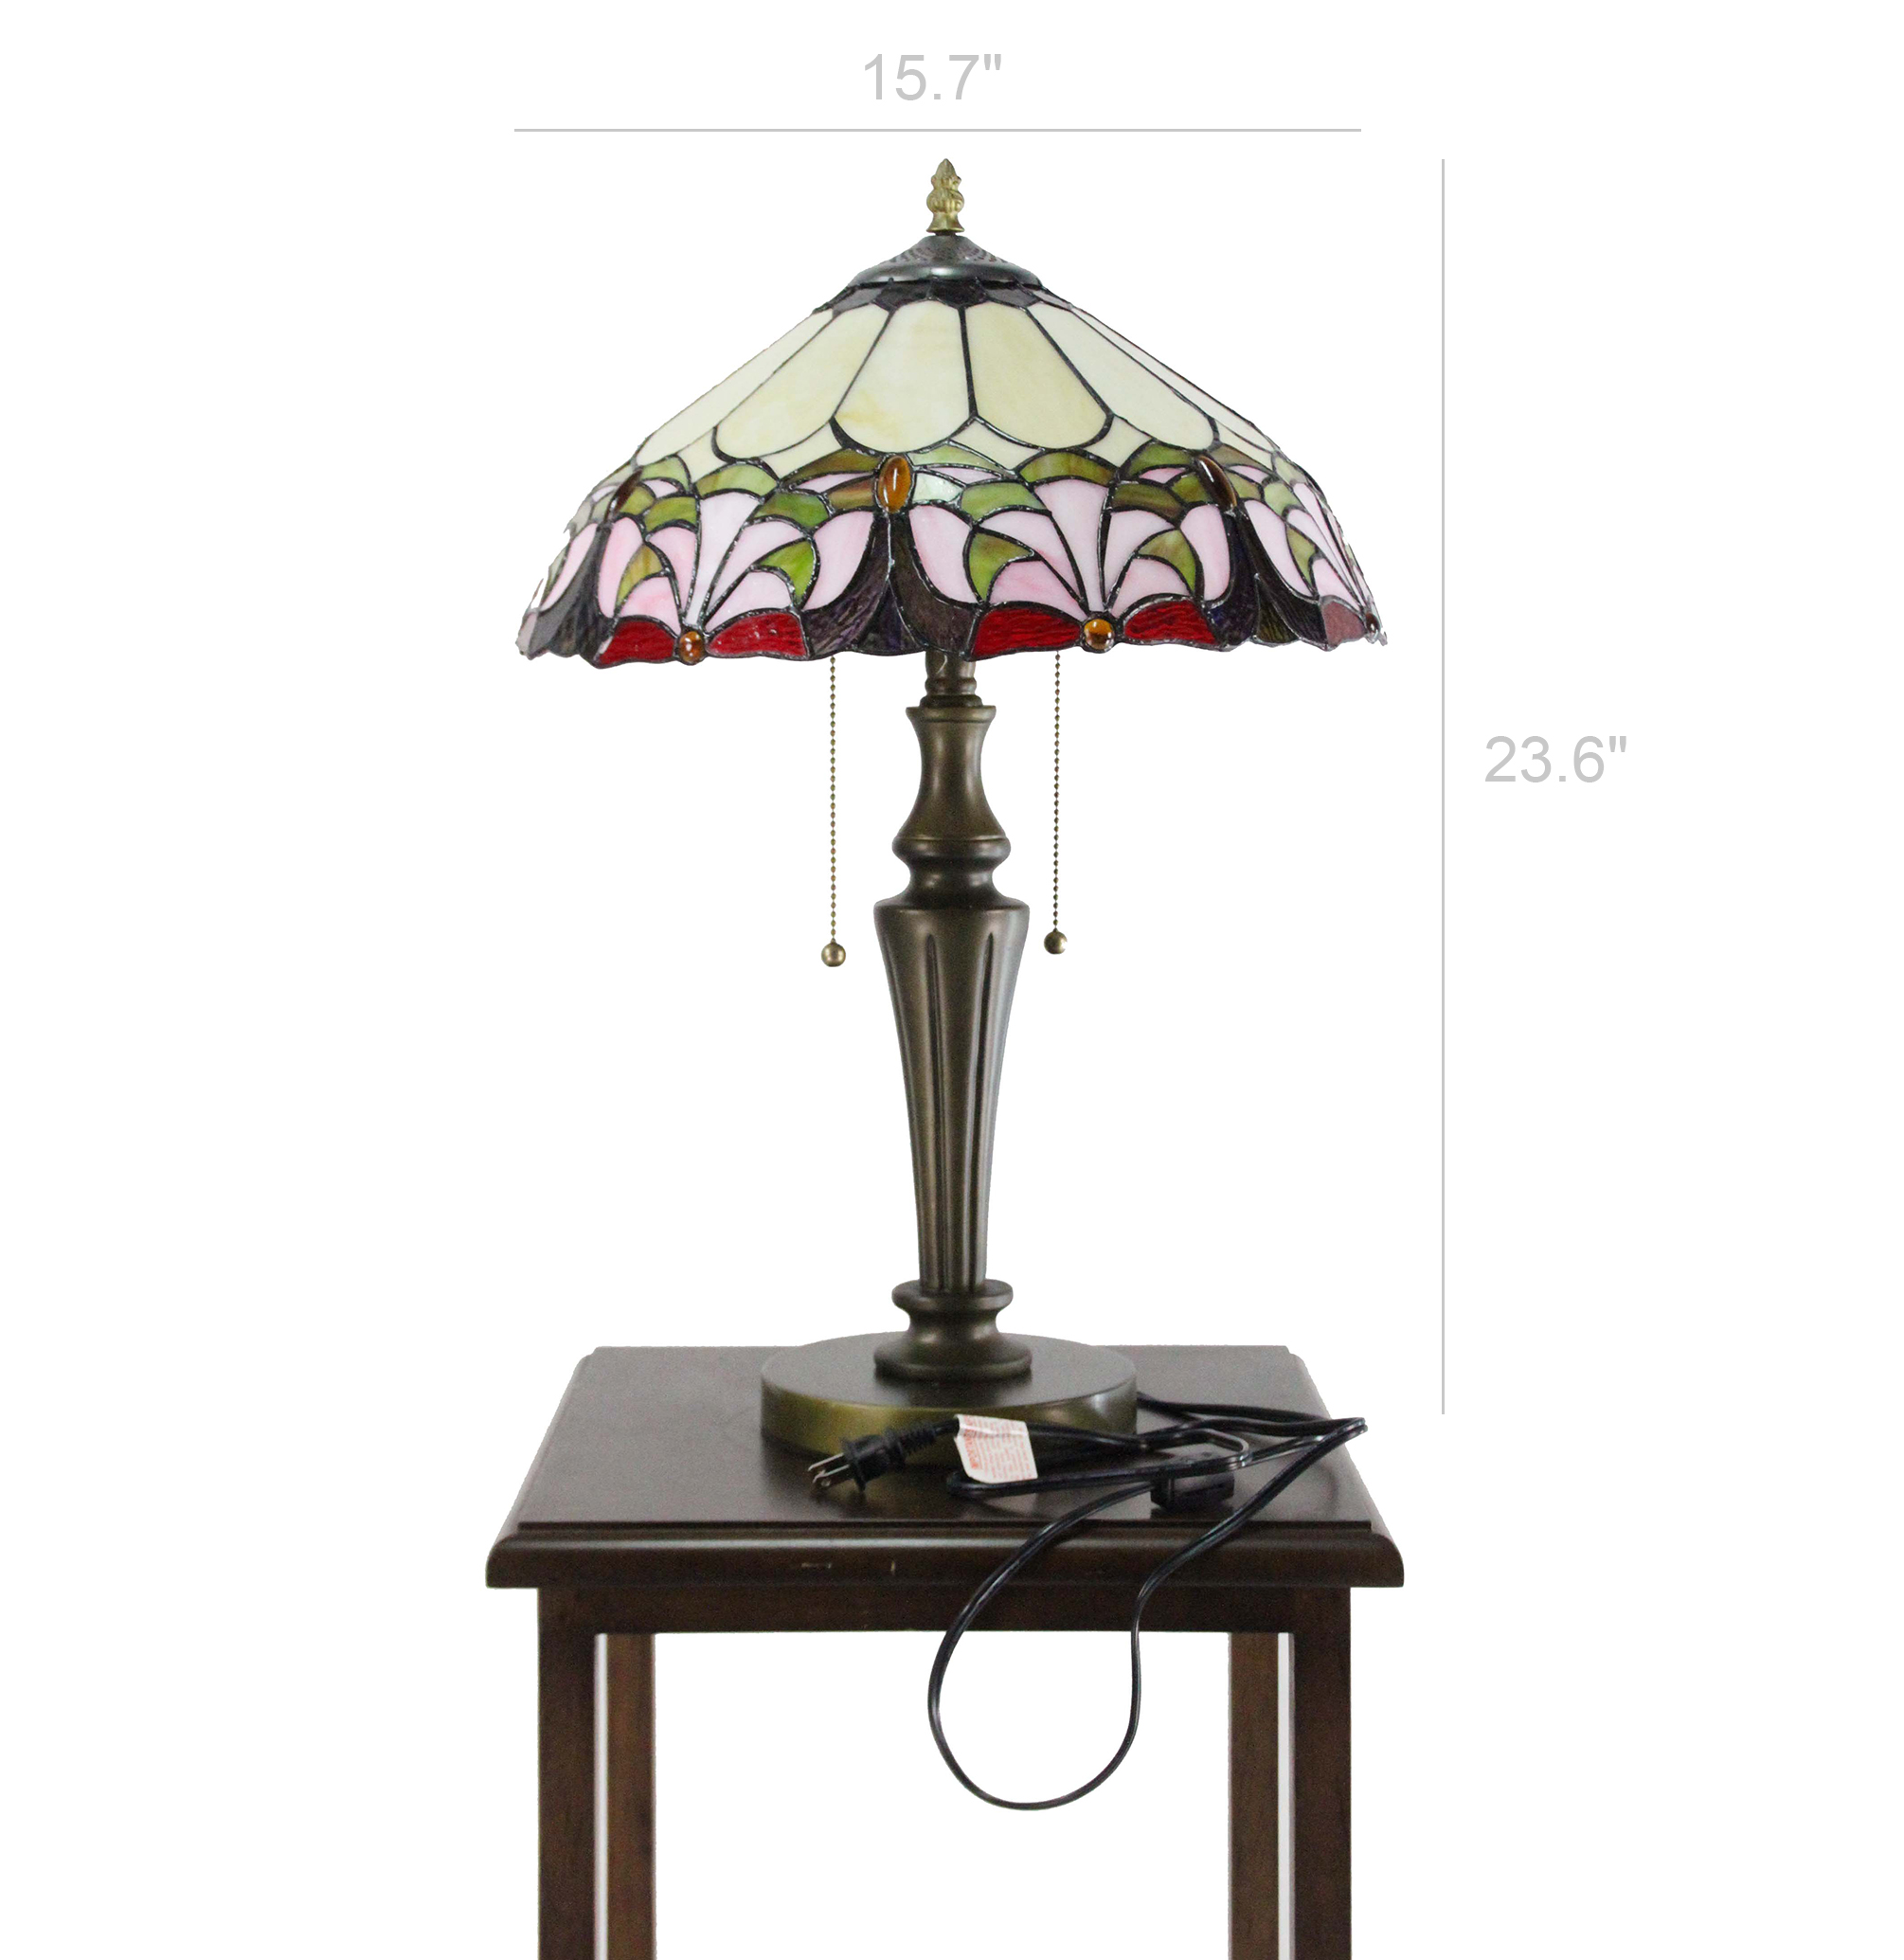 Night Stands Lights Tiffany Night Stand Lamp Tiffany Tabletop Light Fixture